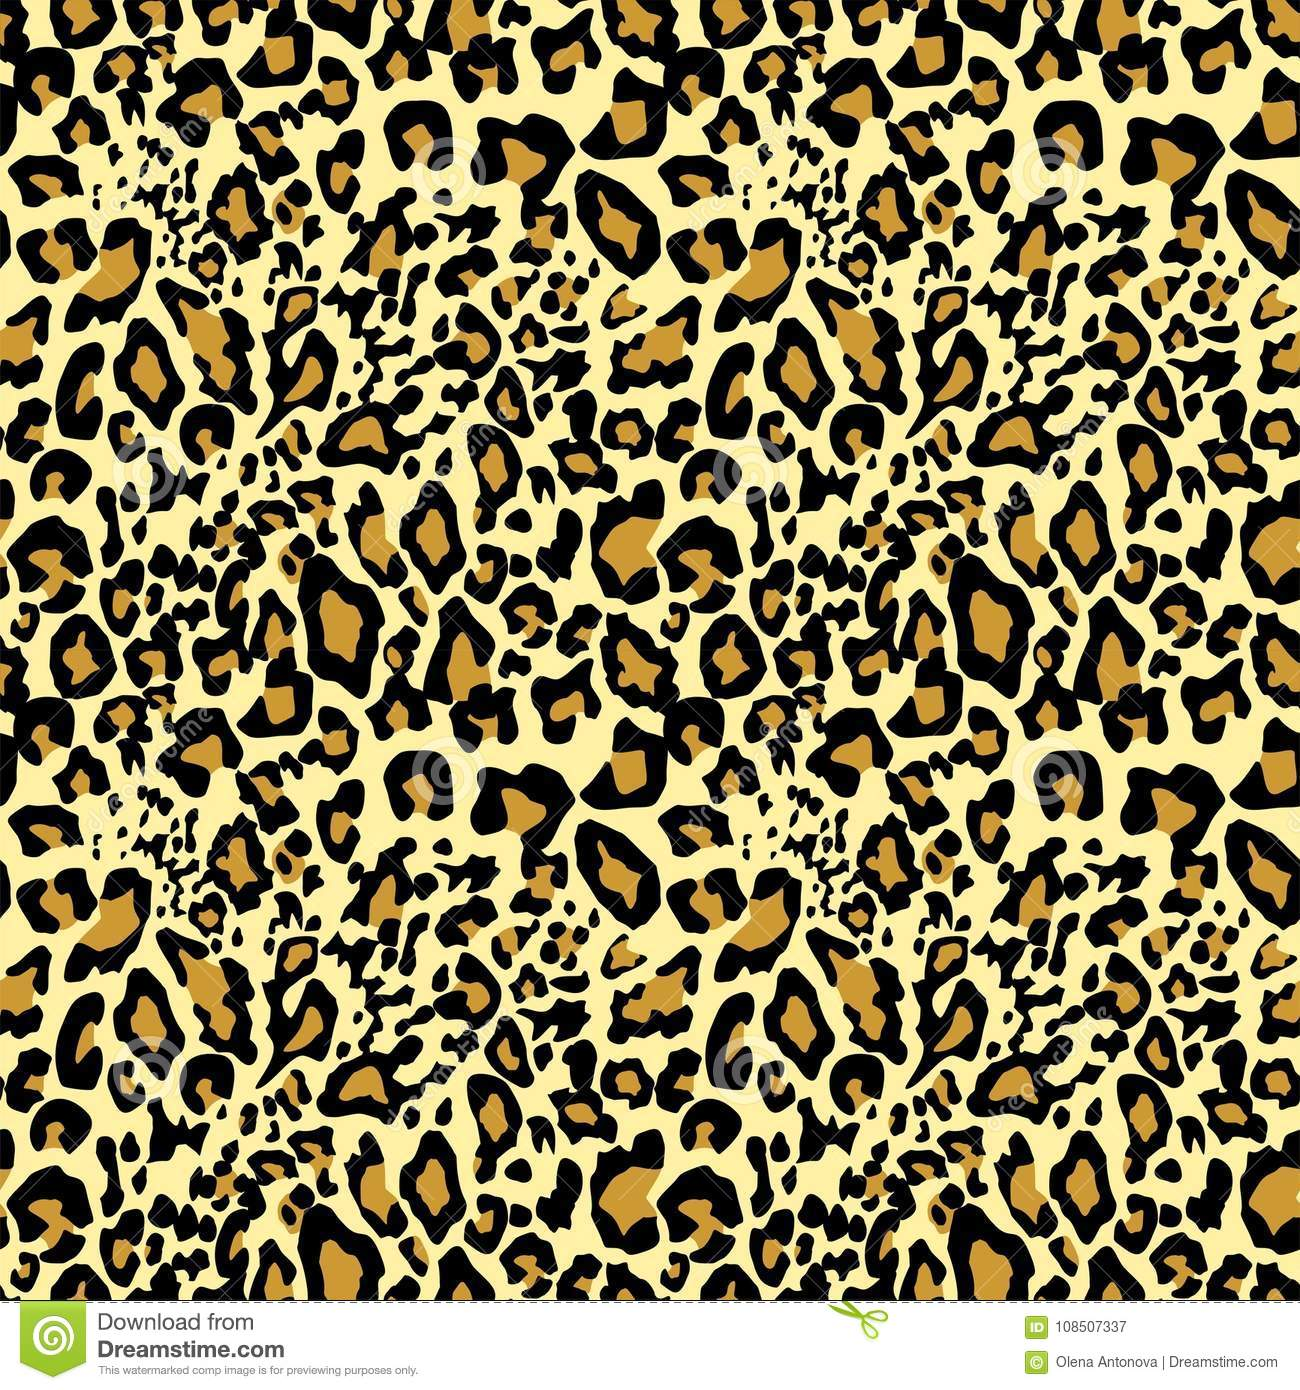 Golden Leopard Wallpaper Animal Print Stock Vector